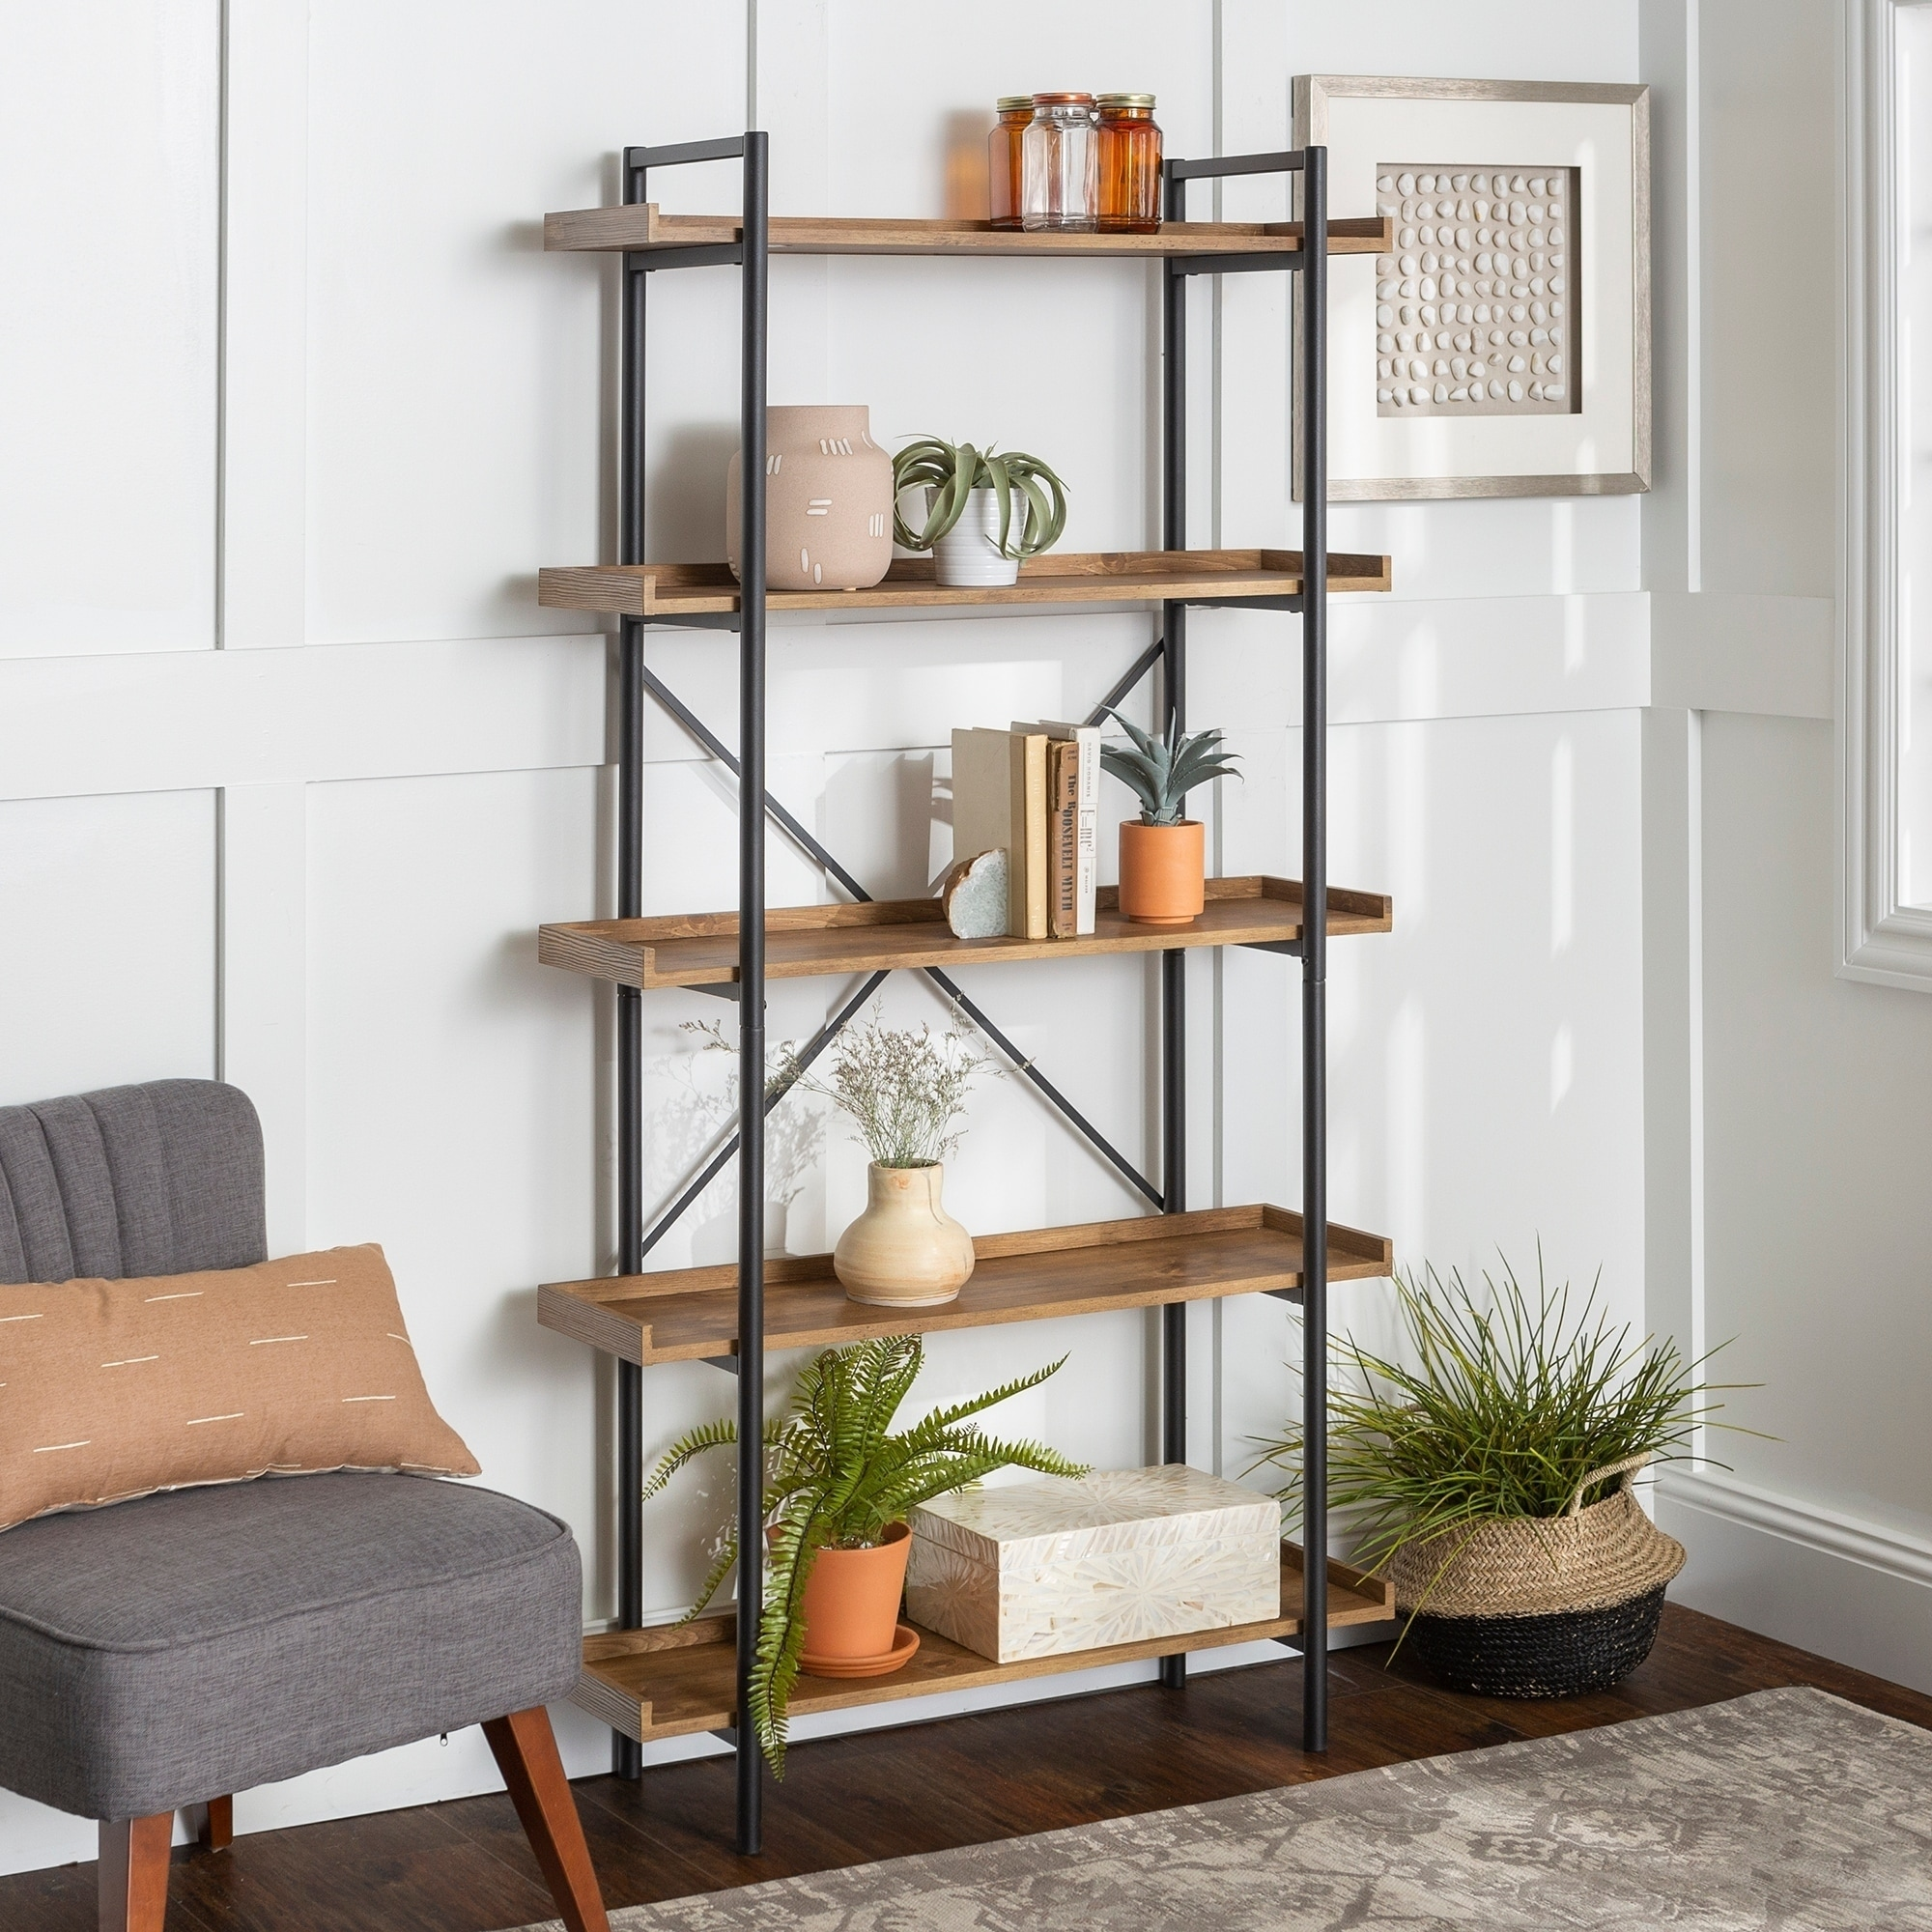 Buy Industrial Bookshelves Bookcases Online At Overstock